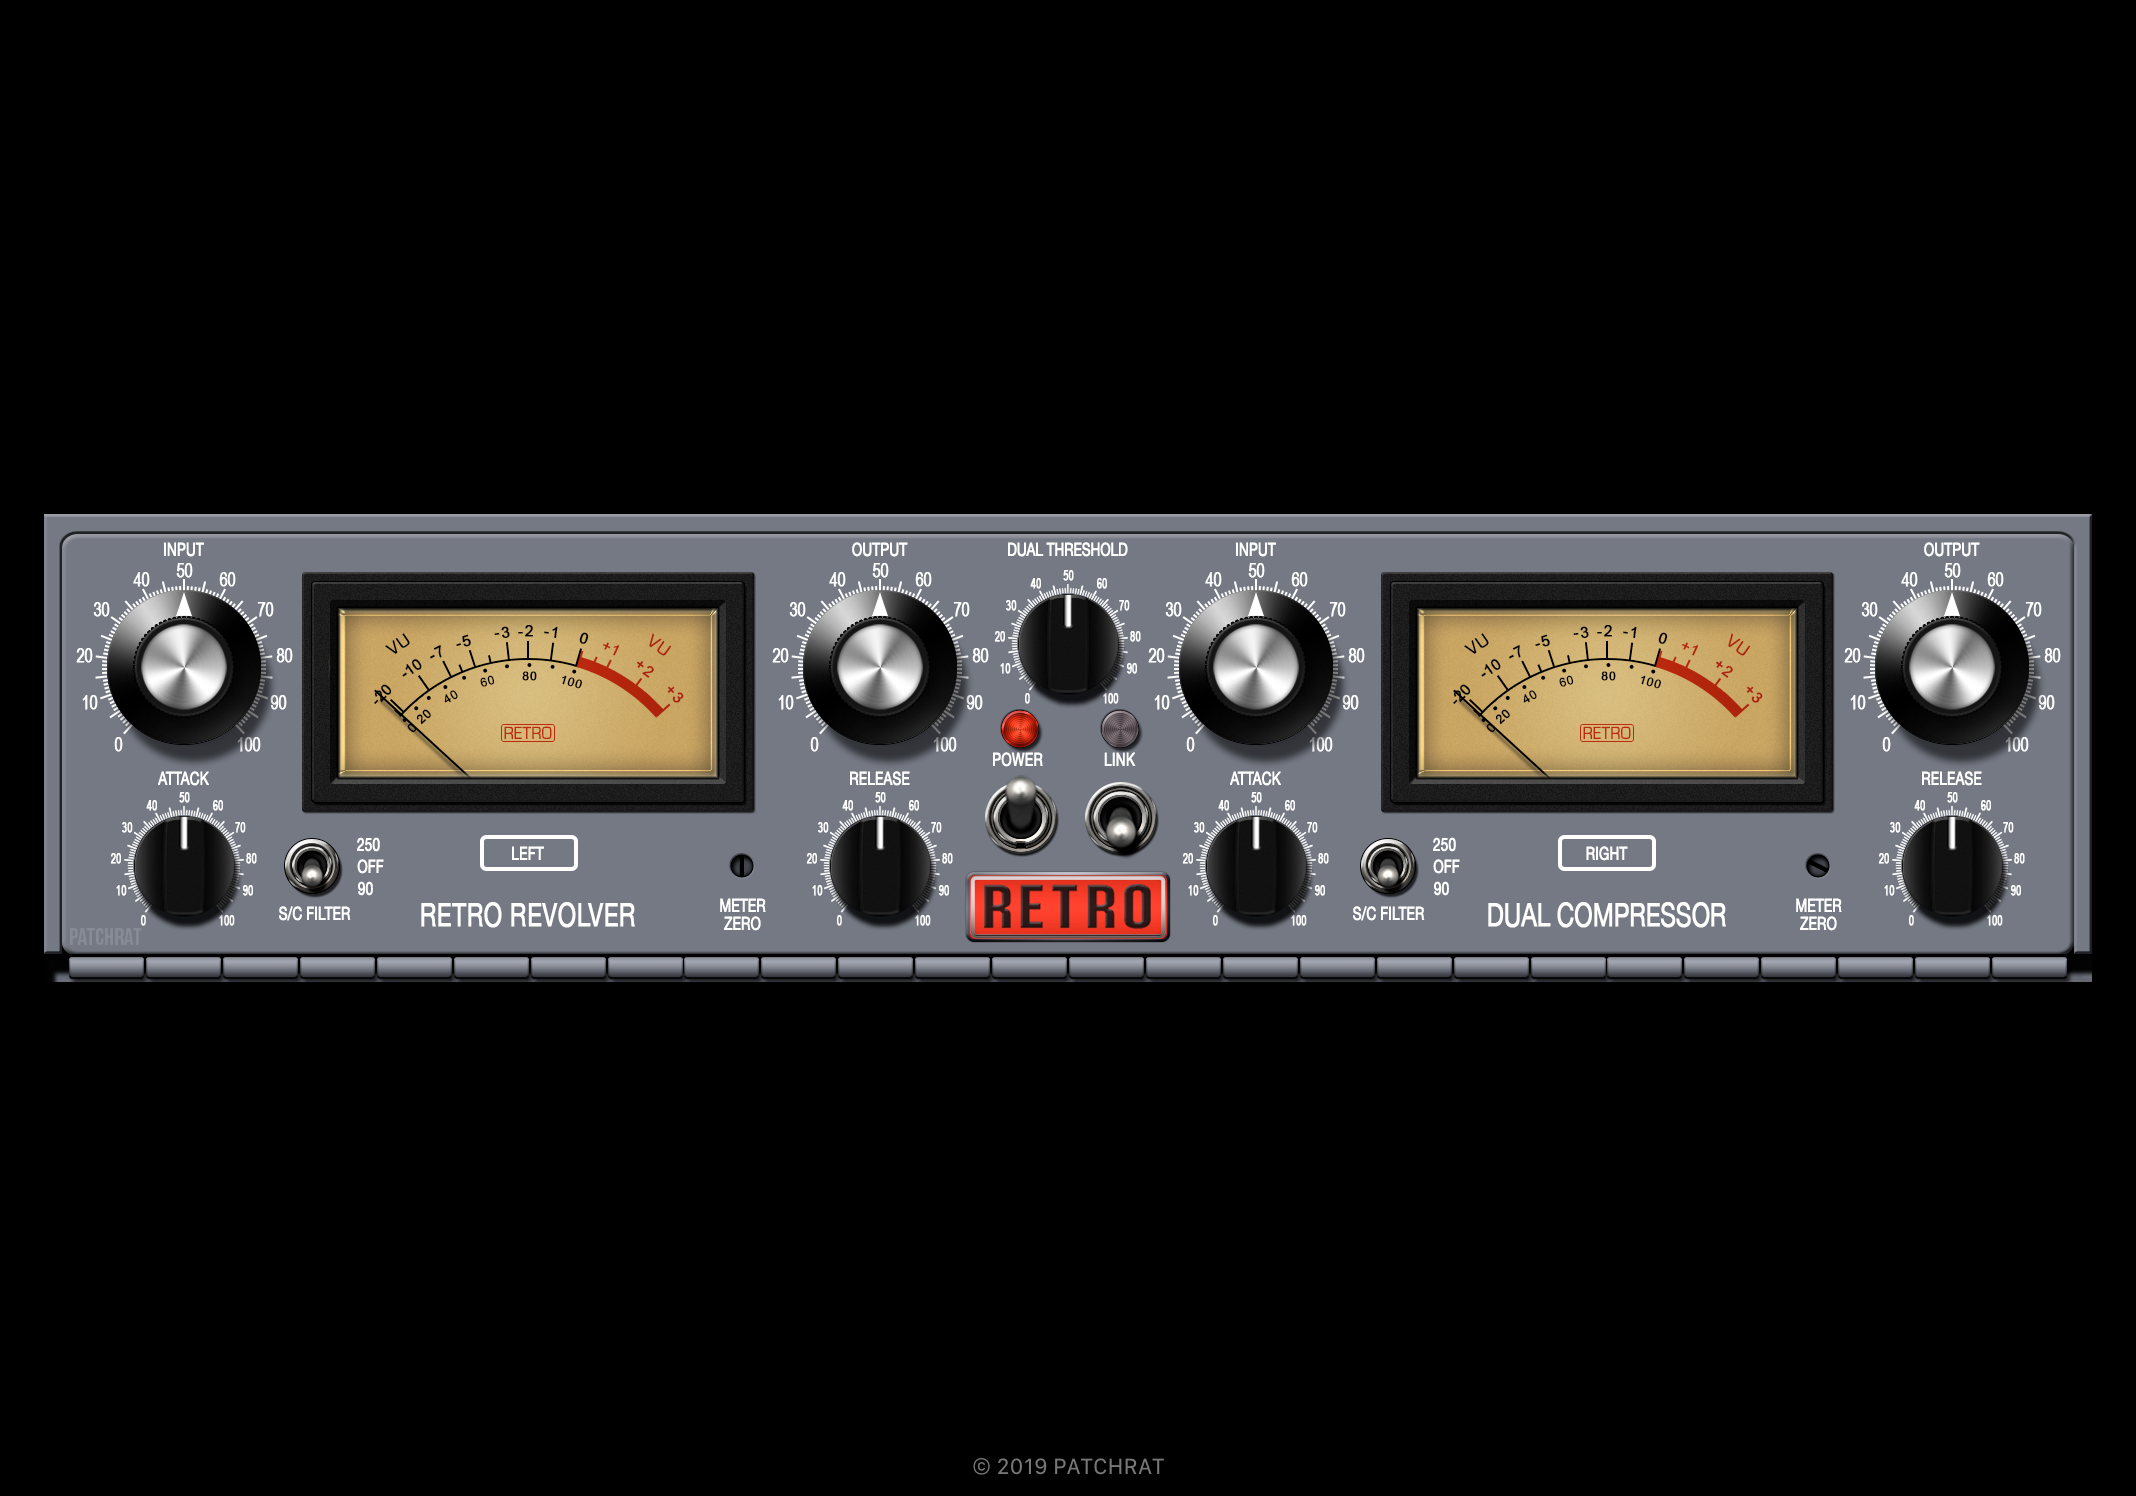 Retro Instruments Revolver recall module for the Patchrat app